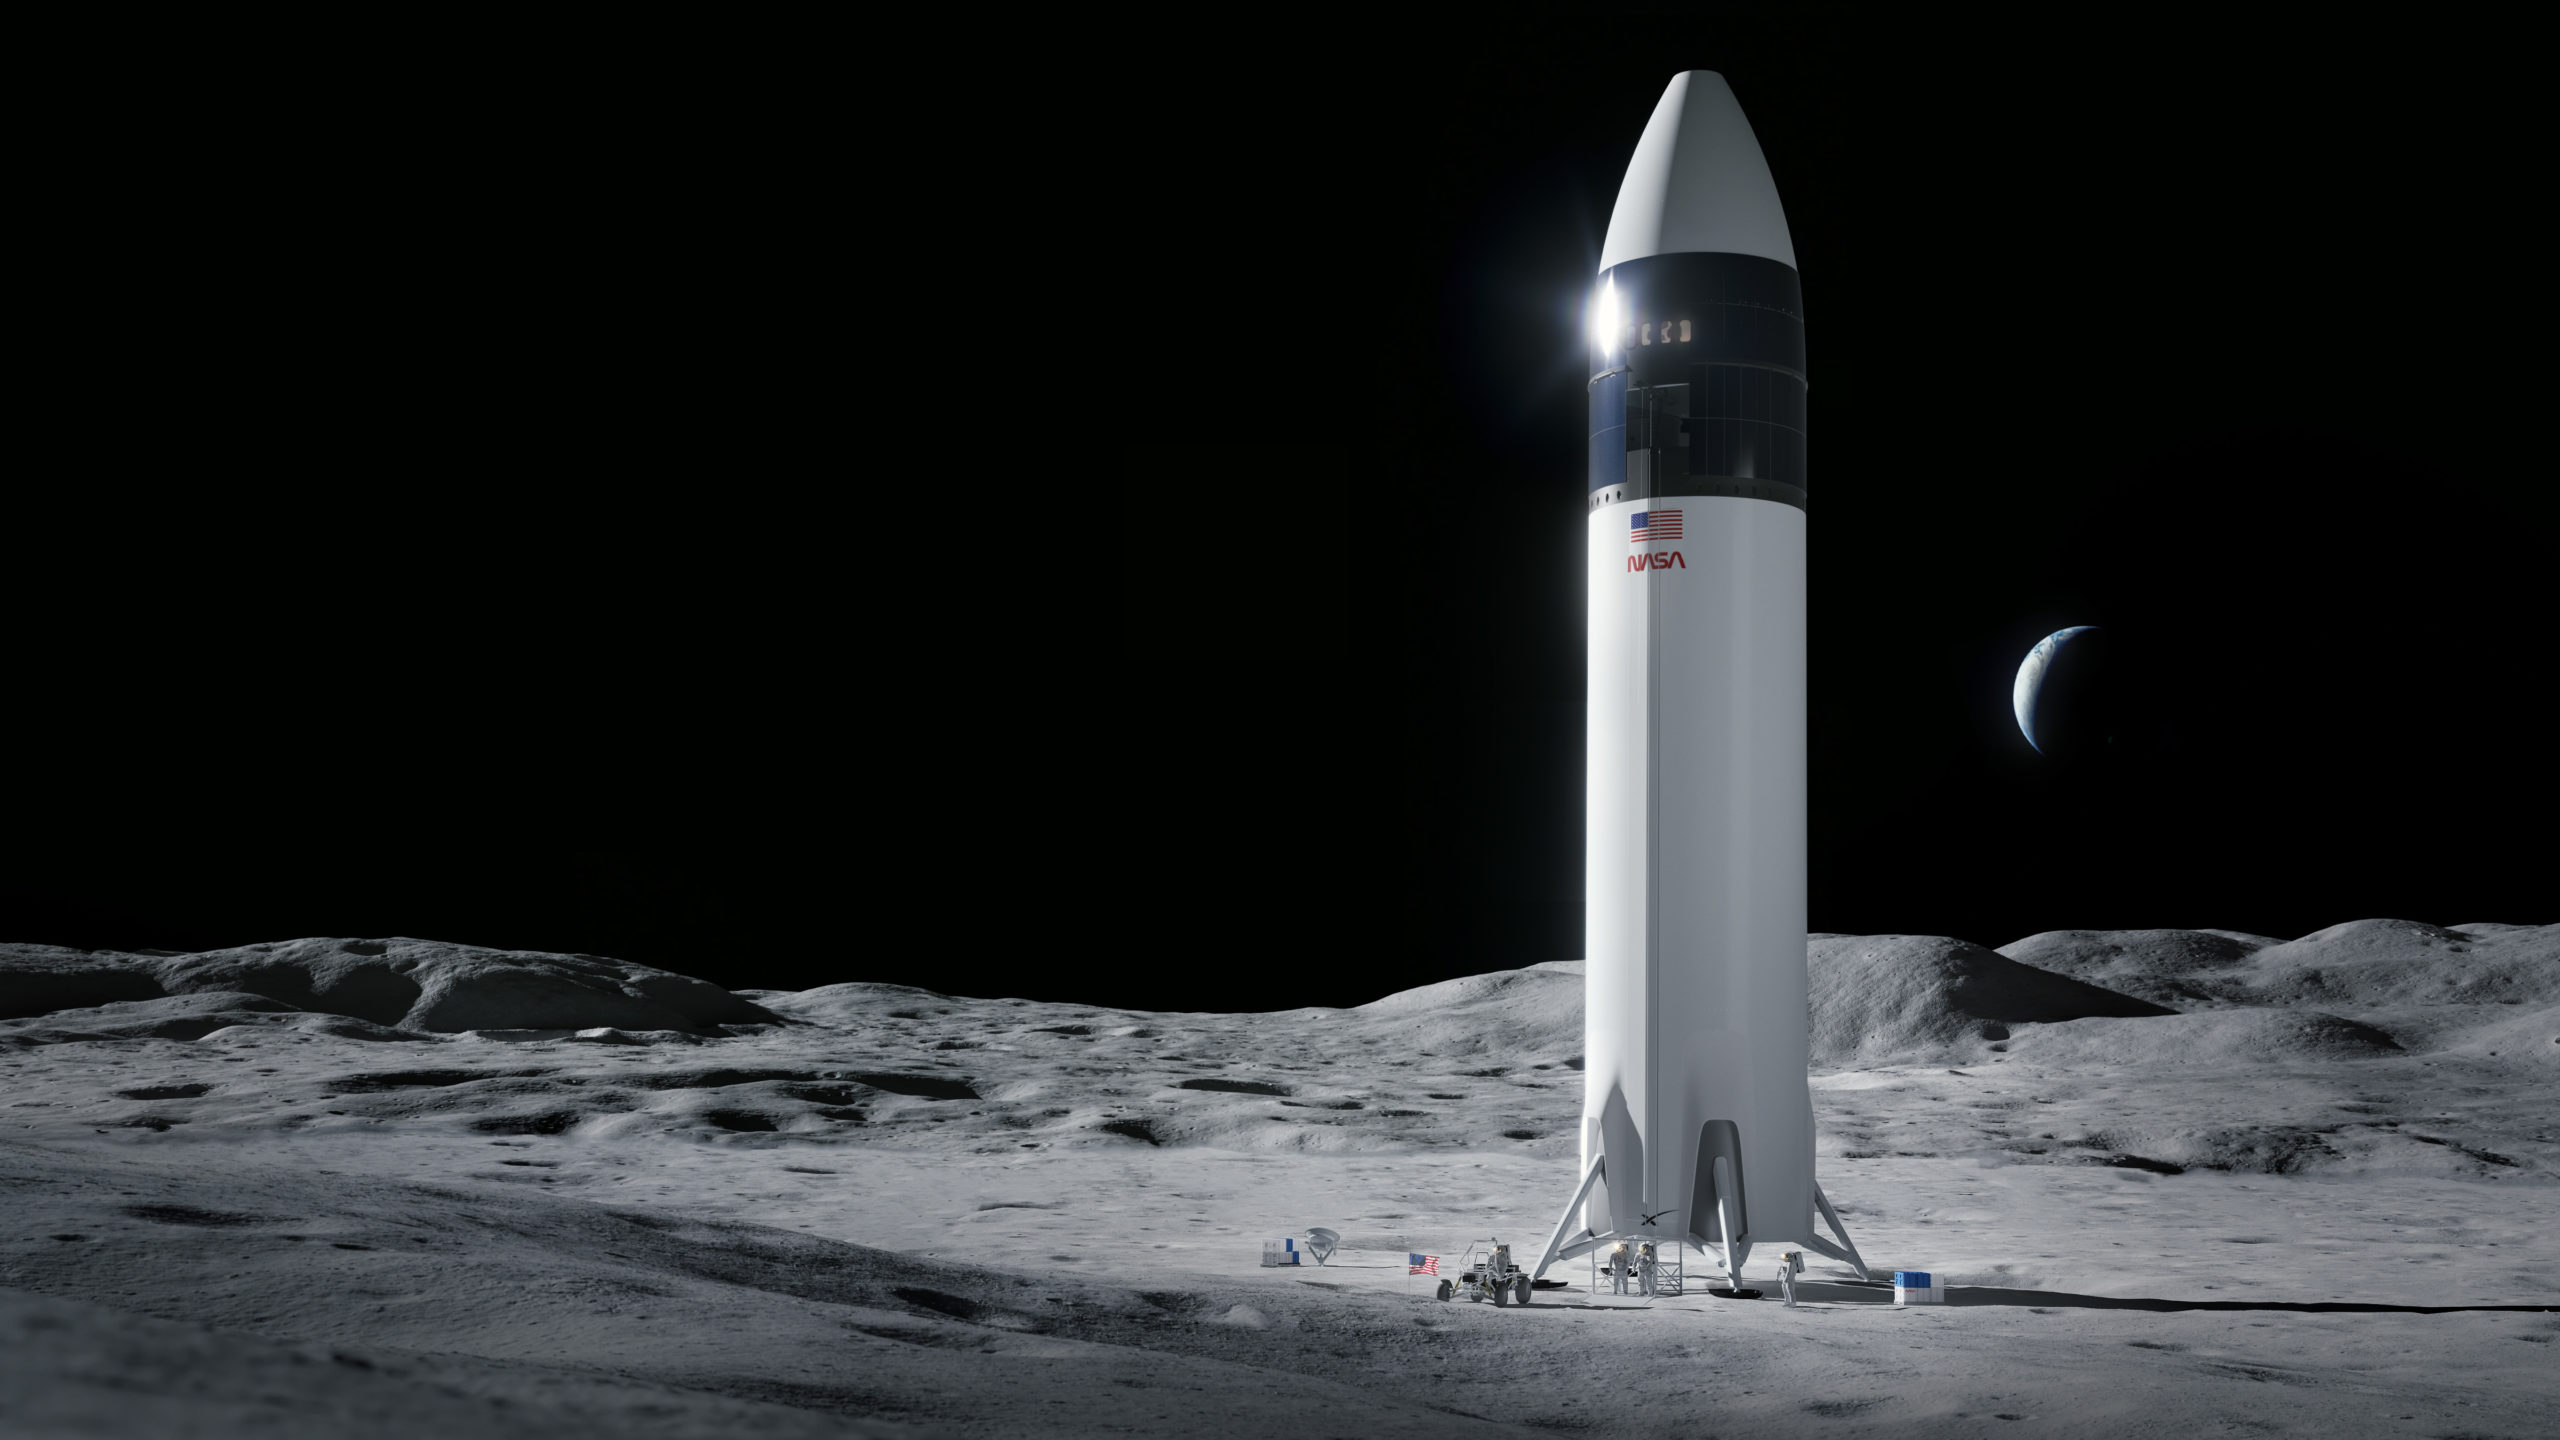 NASA Selects SpaceX to Develop Human Landing System for Artemis Moon Missions, Loser Appeal